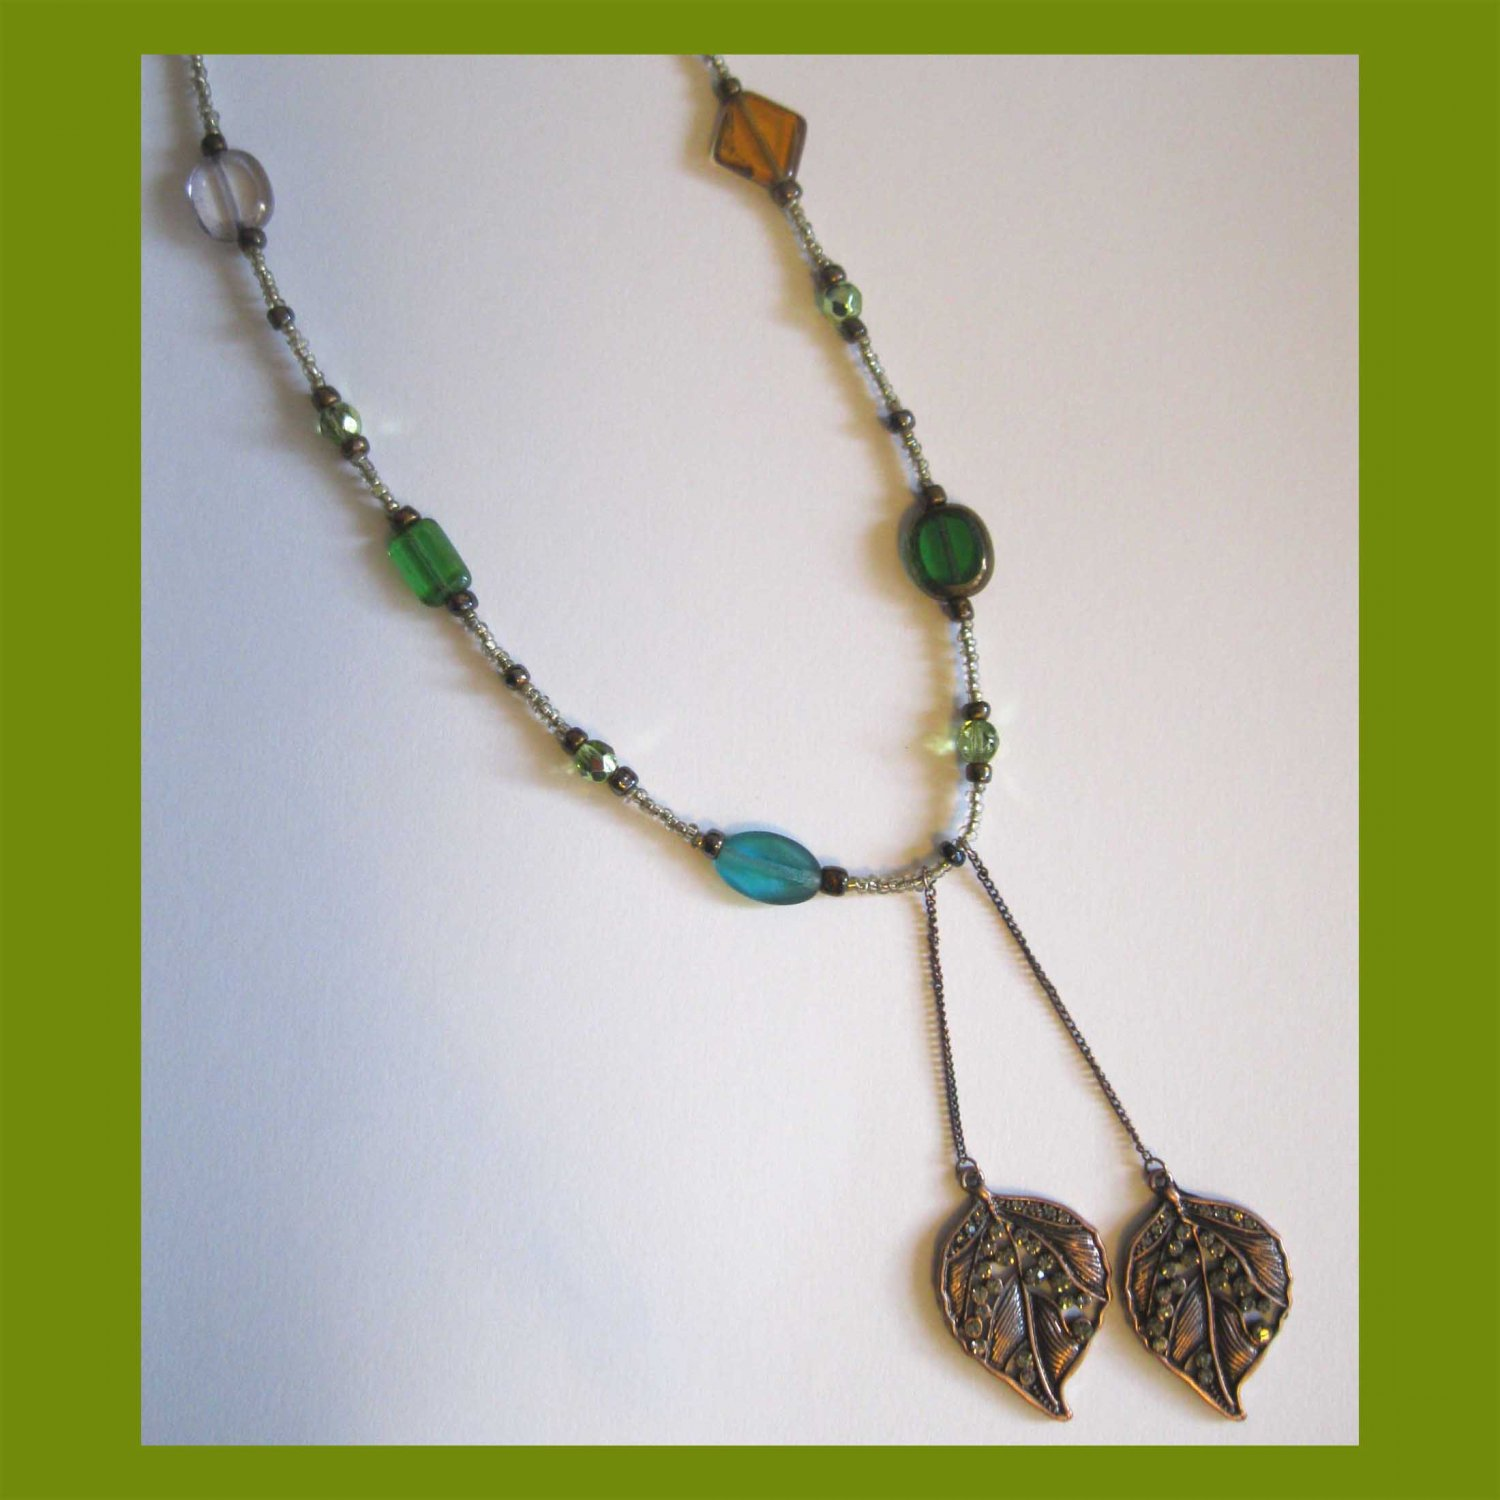 Browns and greens one of a kind fashion necklace with double leaf pendants